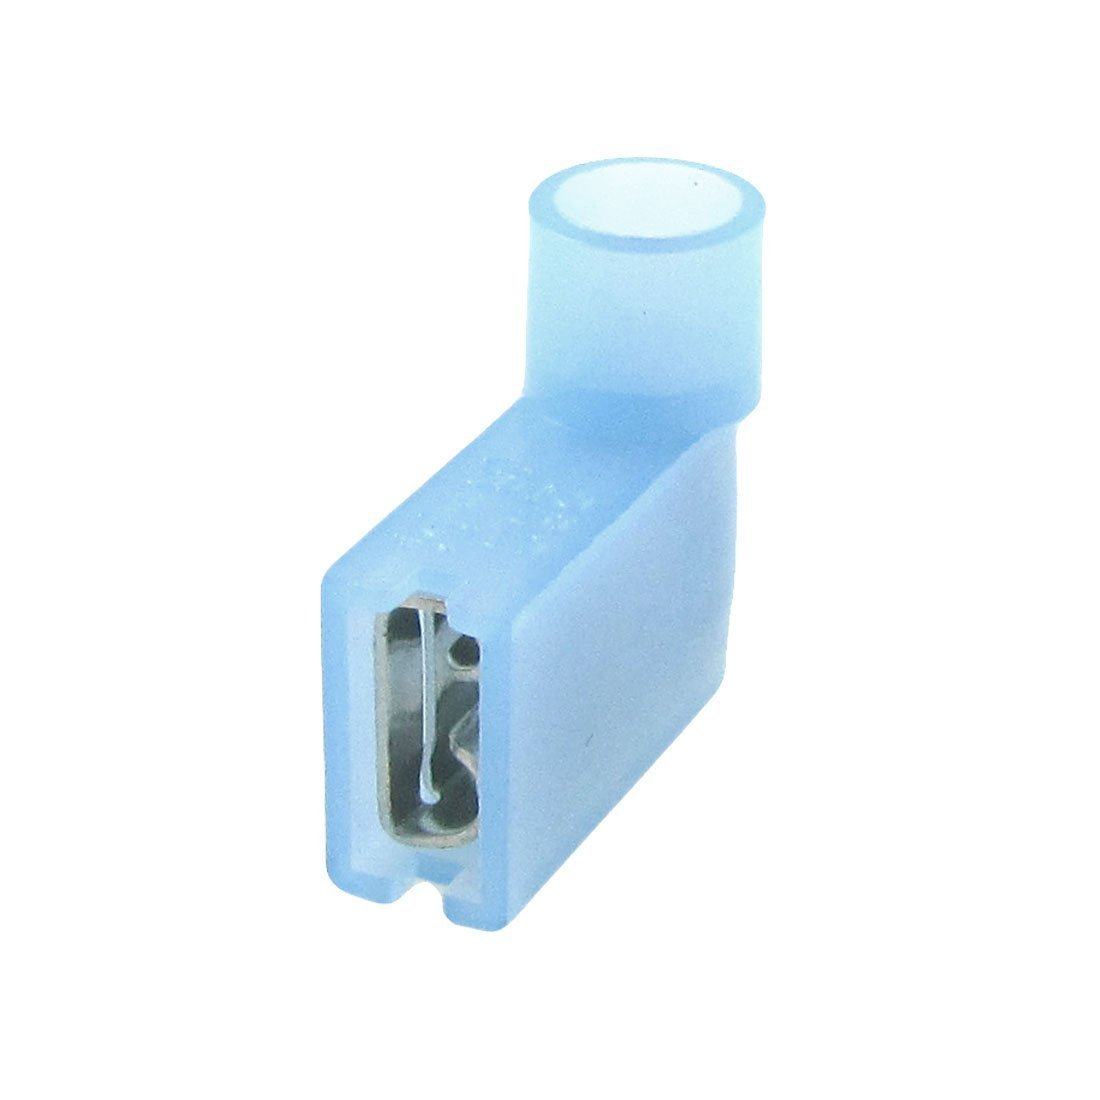 1//4 Uxcell a12050700ux0187 16-14 AWG Female Spade Insulated Flag Terminal Connector 7 Piece